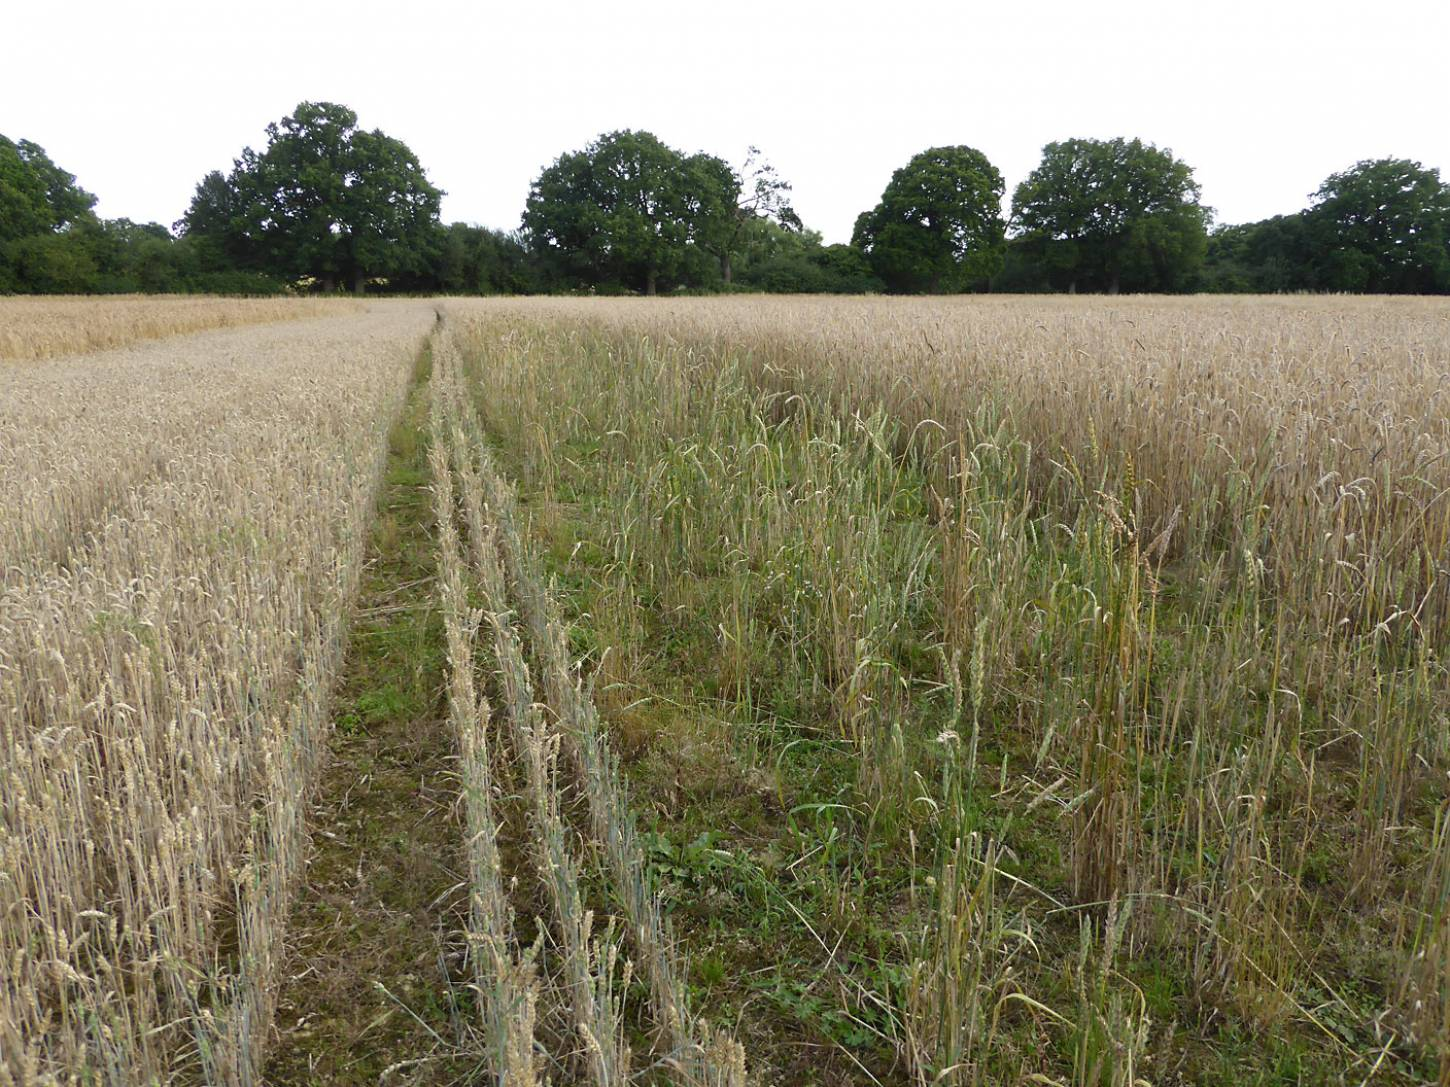 area between Hen Gymro S70 and Nelson with rabbit damage? Secondary tillering of damaged plants? farm review pre-harvest '17 - 6:25pm&nbsp;1<sup>st</sup>&nbsp;Aug.&nbsp;'17  <a href='http://maps.google.com/?t=h&q=51.208869,-0.085211&z=18&output=embed' target=_blank><img src='http://www.brockwell-bake.org.uk/img/marker.png' style='border:none;vertical-align:top' height=16px></a>